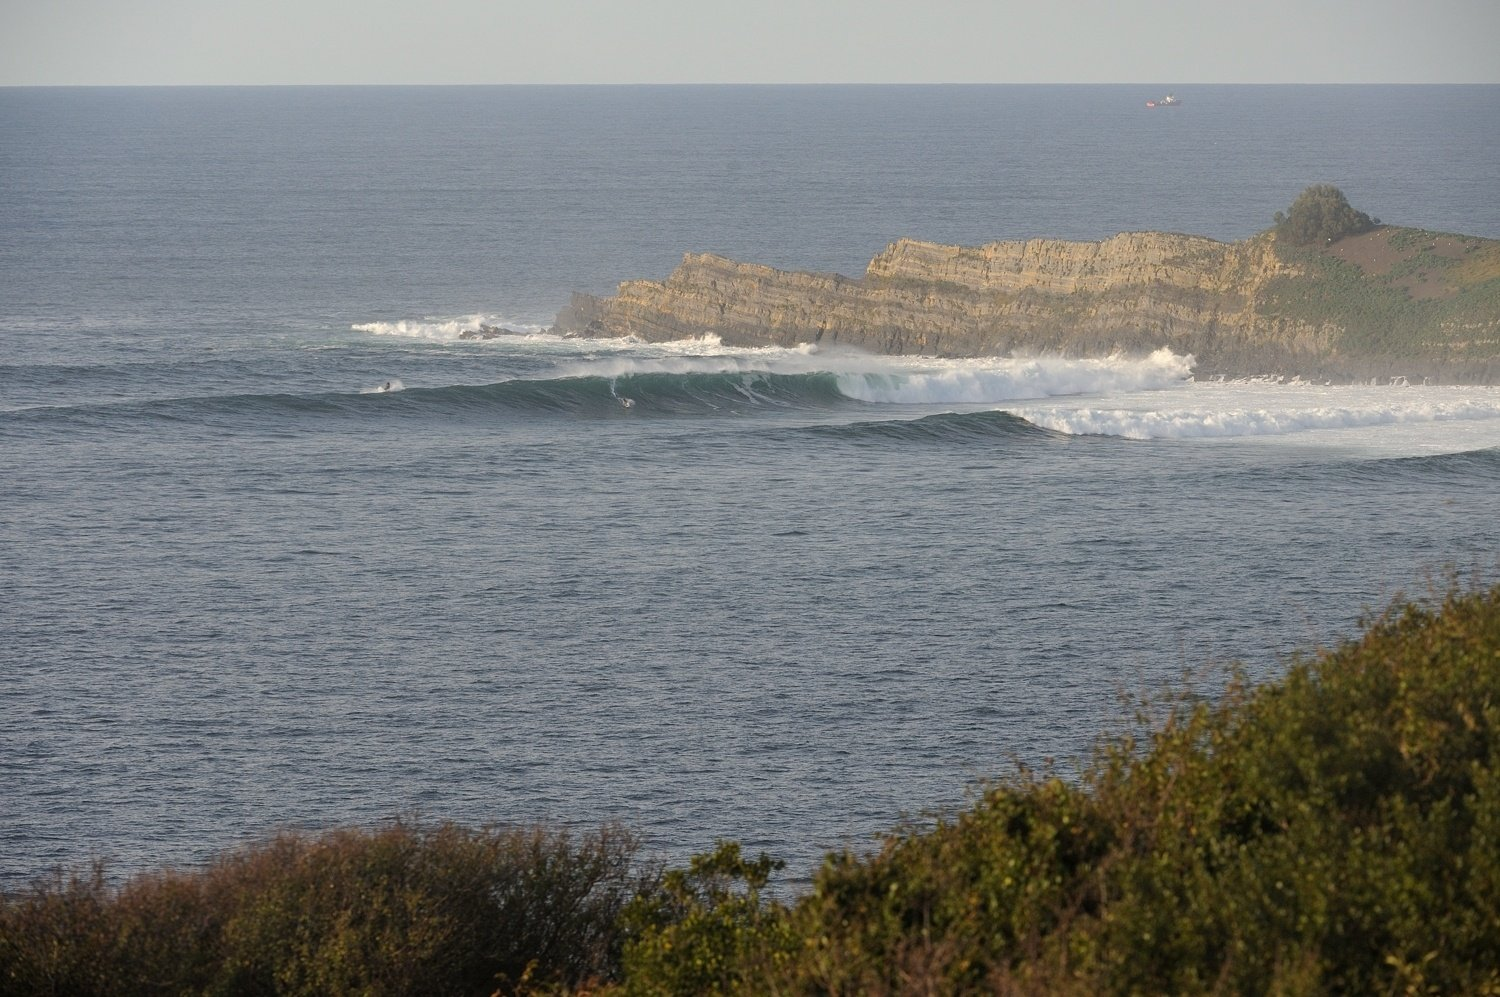 Tom's photo of Mundaka